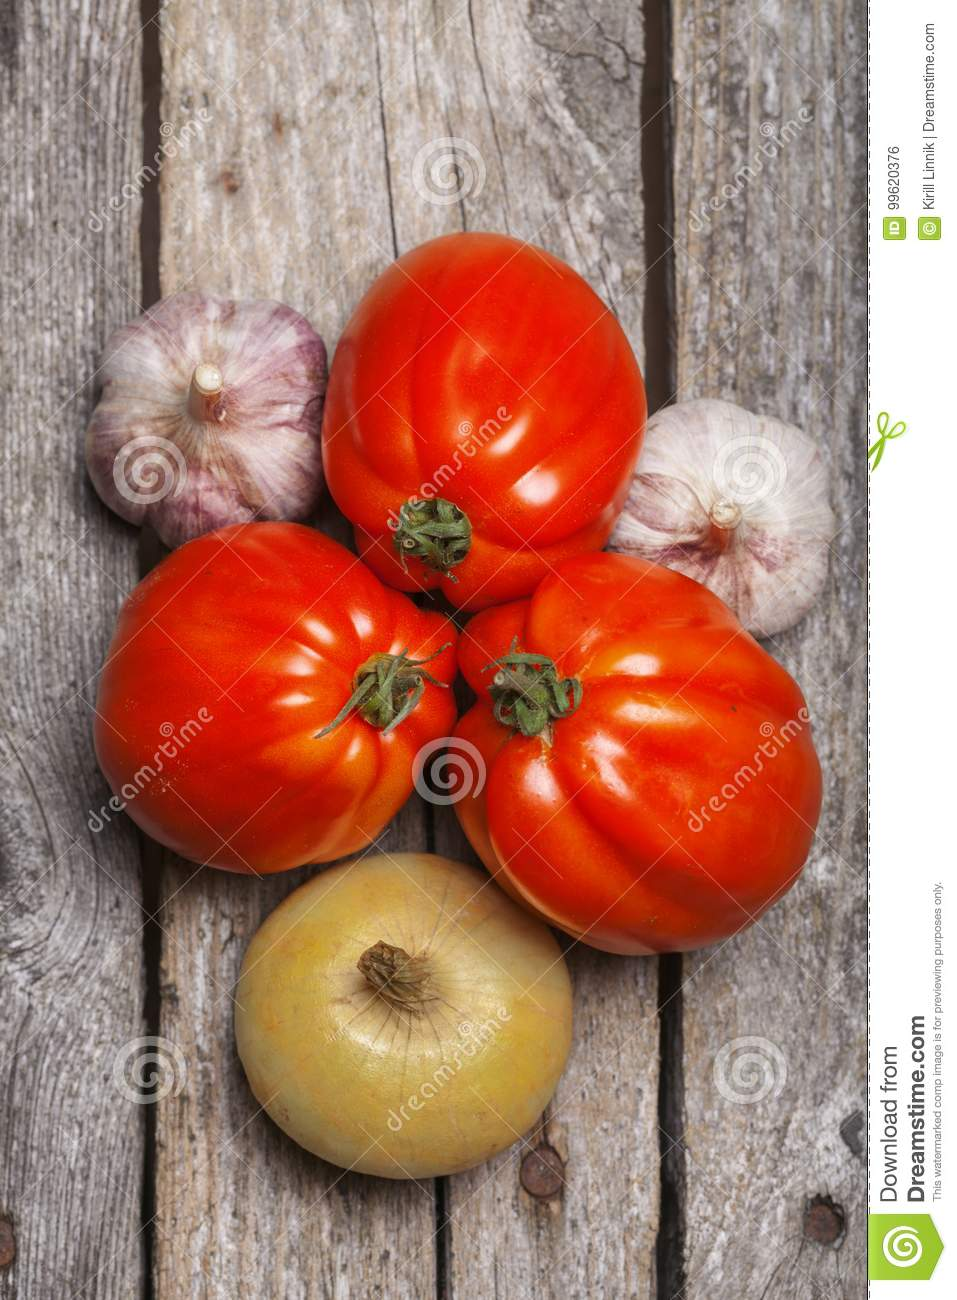 Download Tomatoes, Onion And Garlic On The Table Stock Photo - Image of copy, country: 99620376